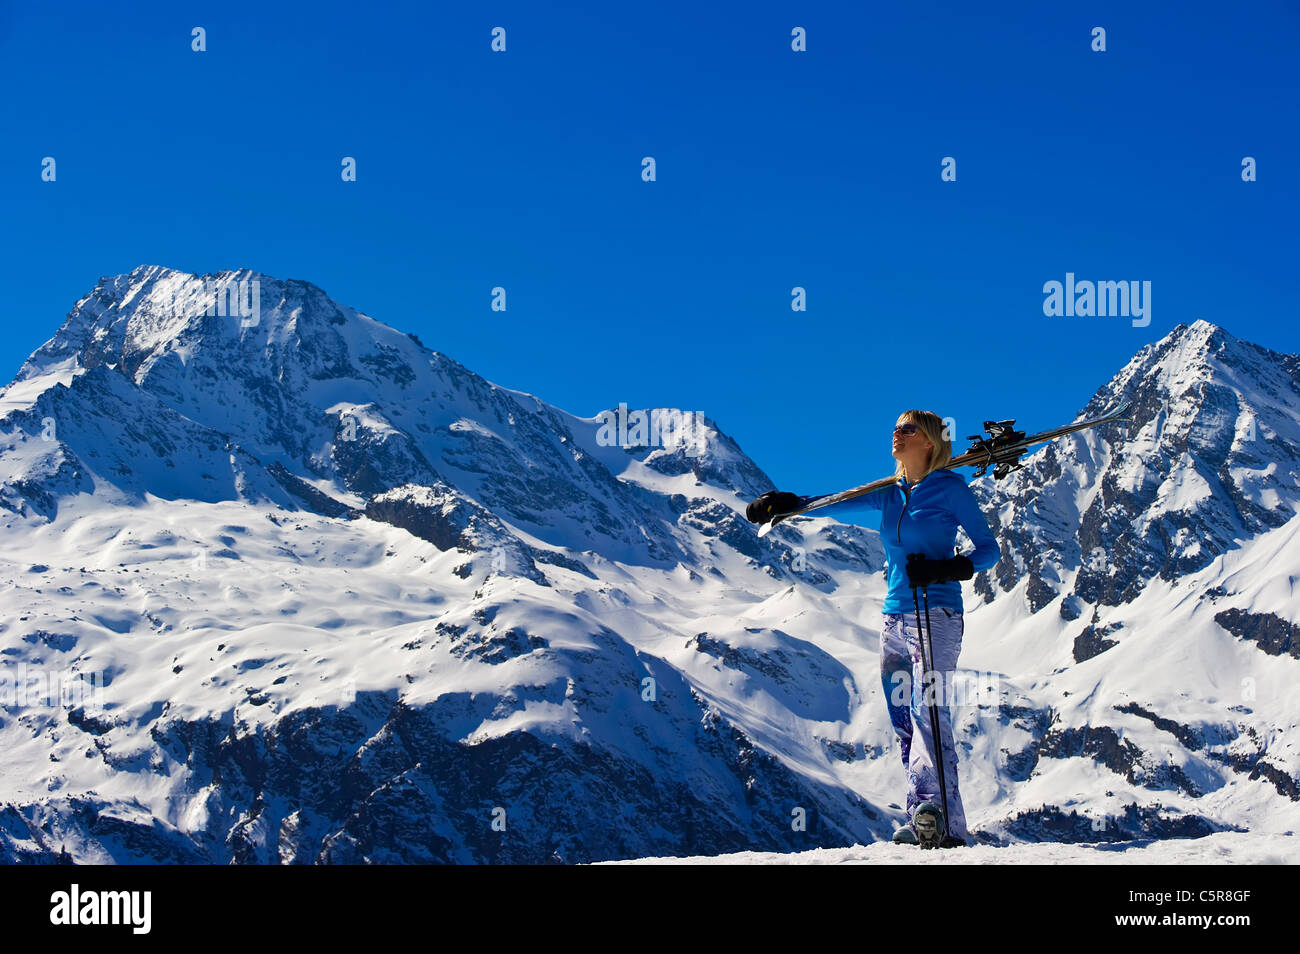 A women takes in the breathtaking snowy mountain view. - Stock Image